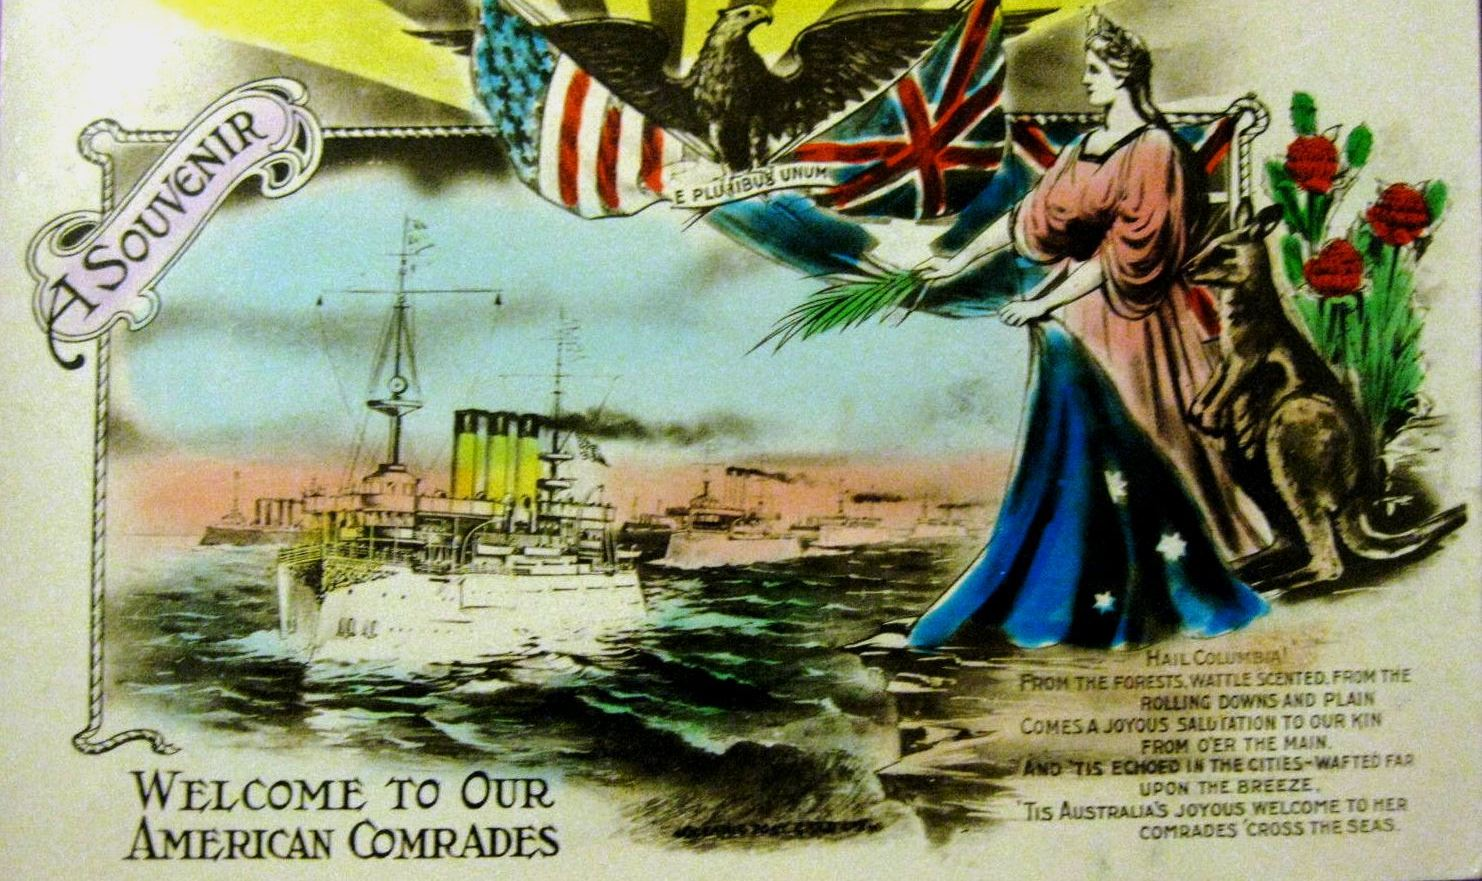 Souvenir marking the visit of the US 'Great White Fleet' to Australia, 1908. (Flickr/Aussie-mobs)